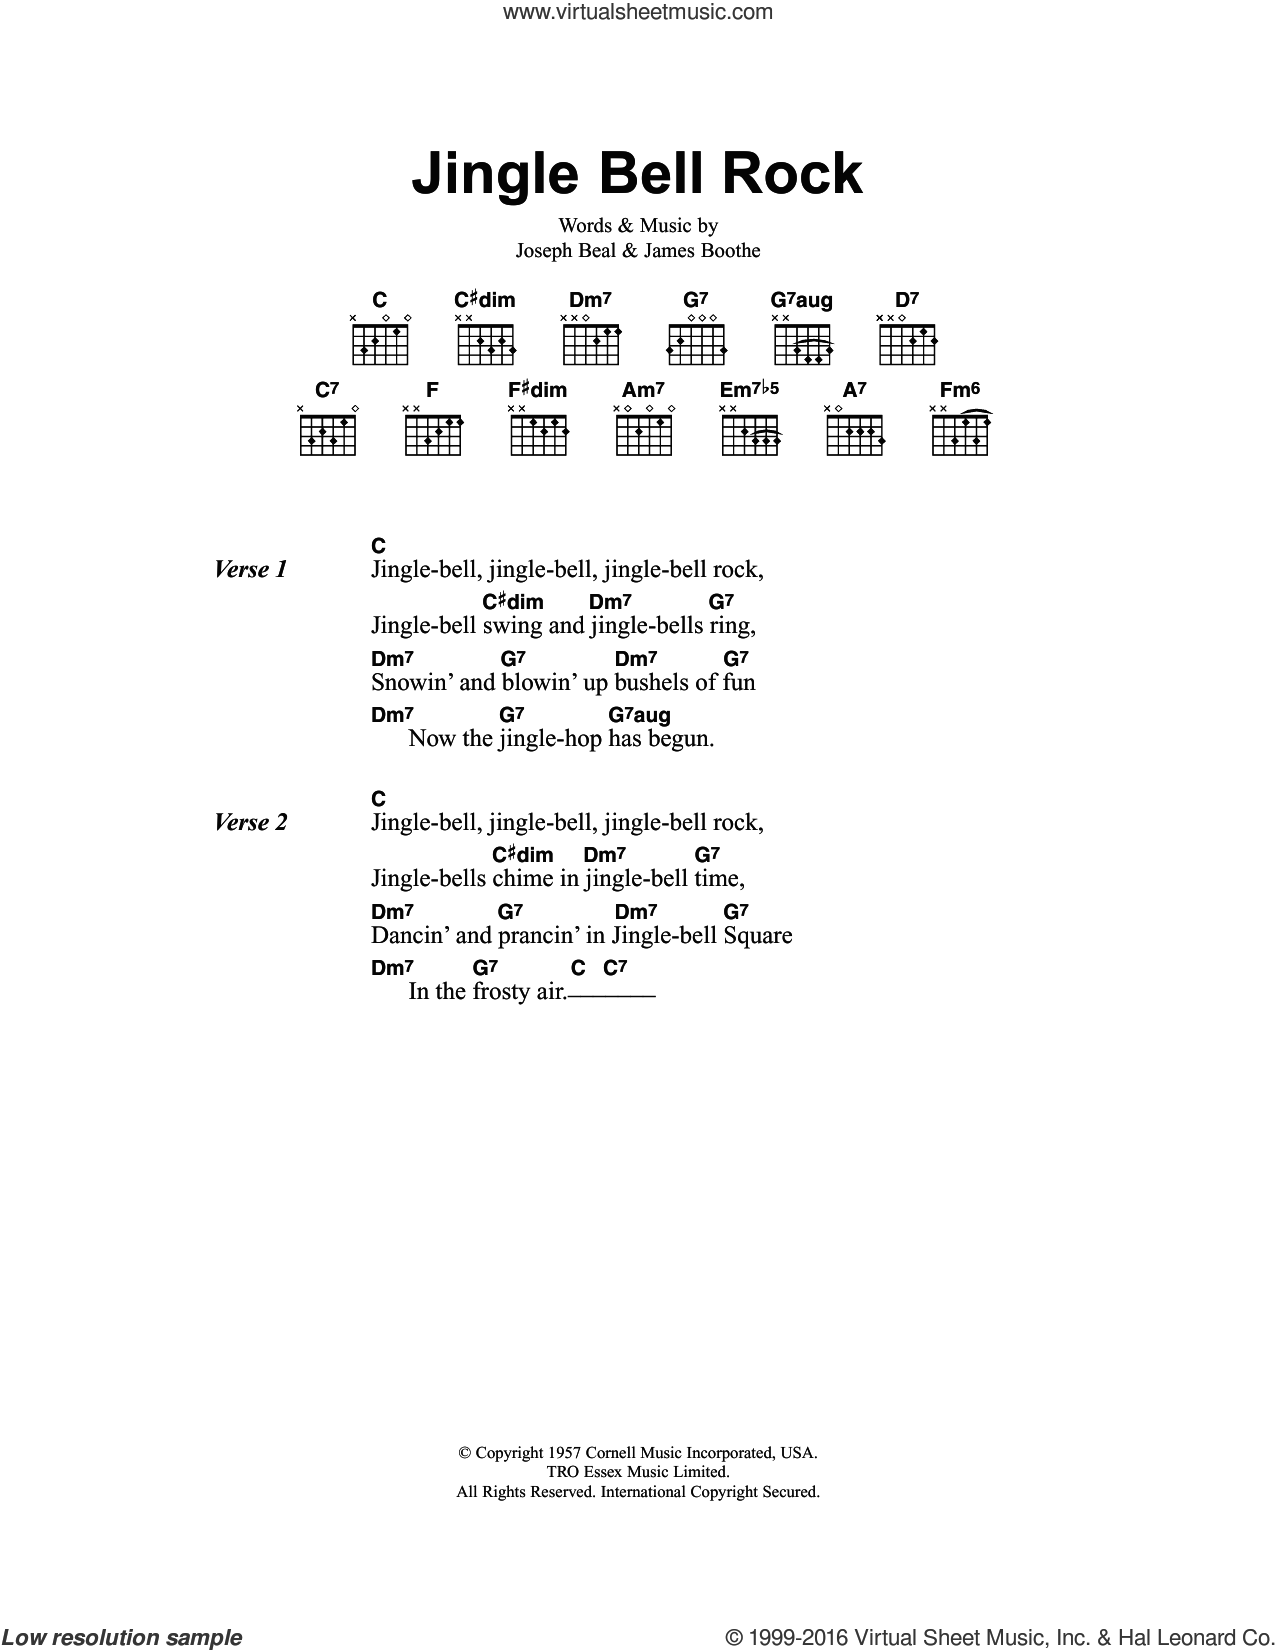 Jingle Bell Rock sheet music for guitar (chords) by Chubby Checker, James Boothe and Joe Beal, intermediate skill level